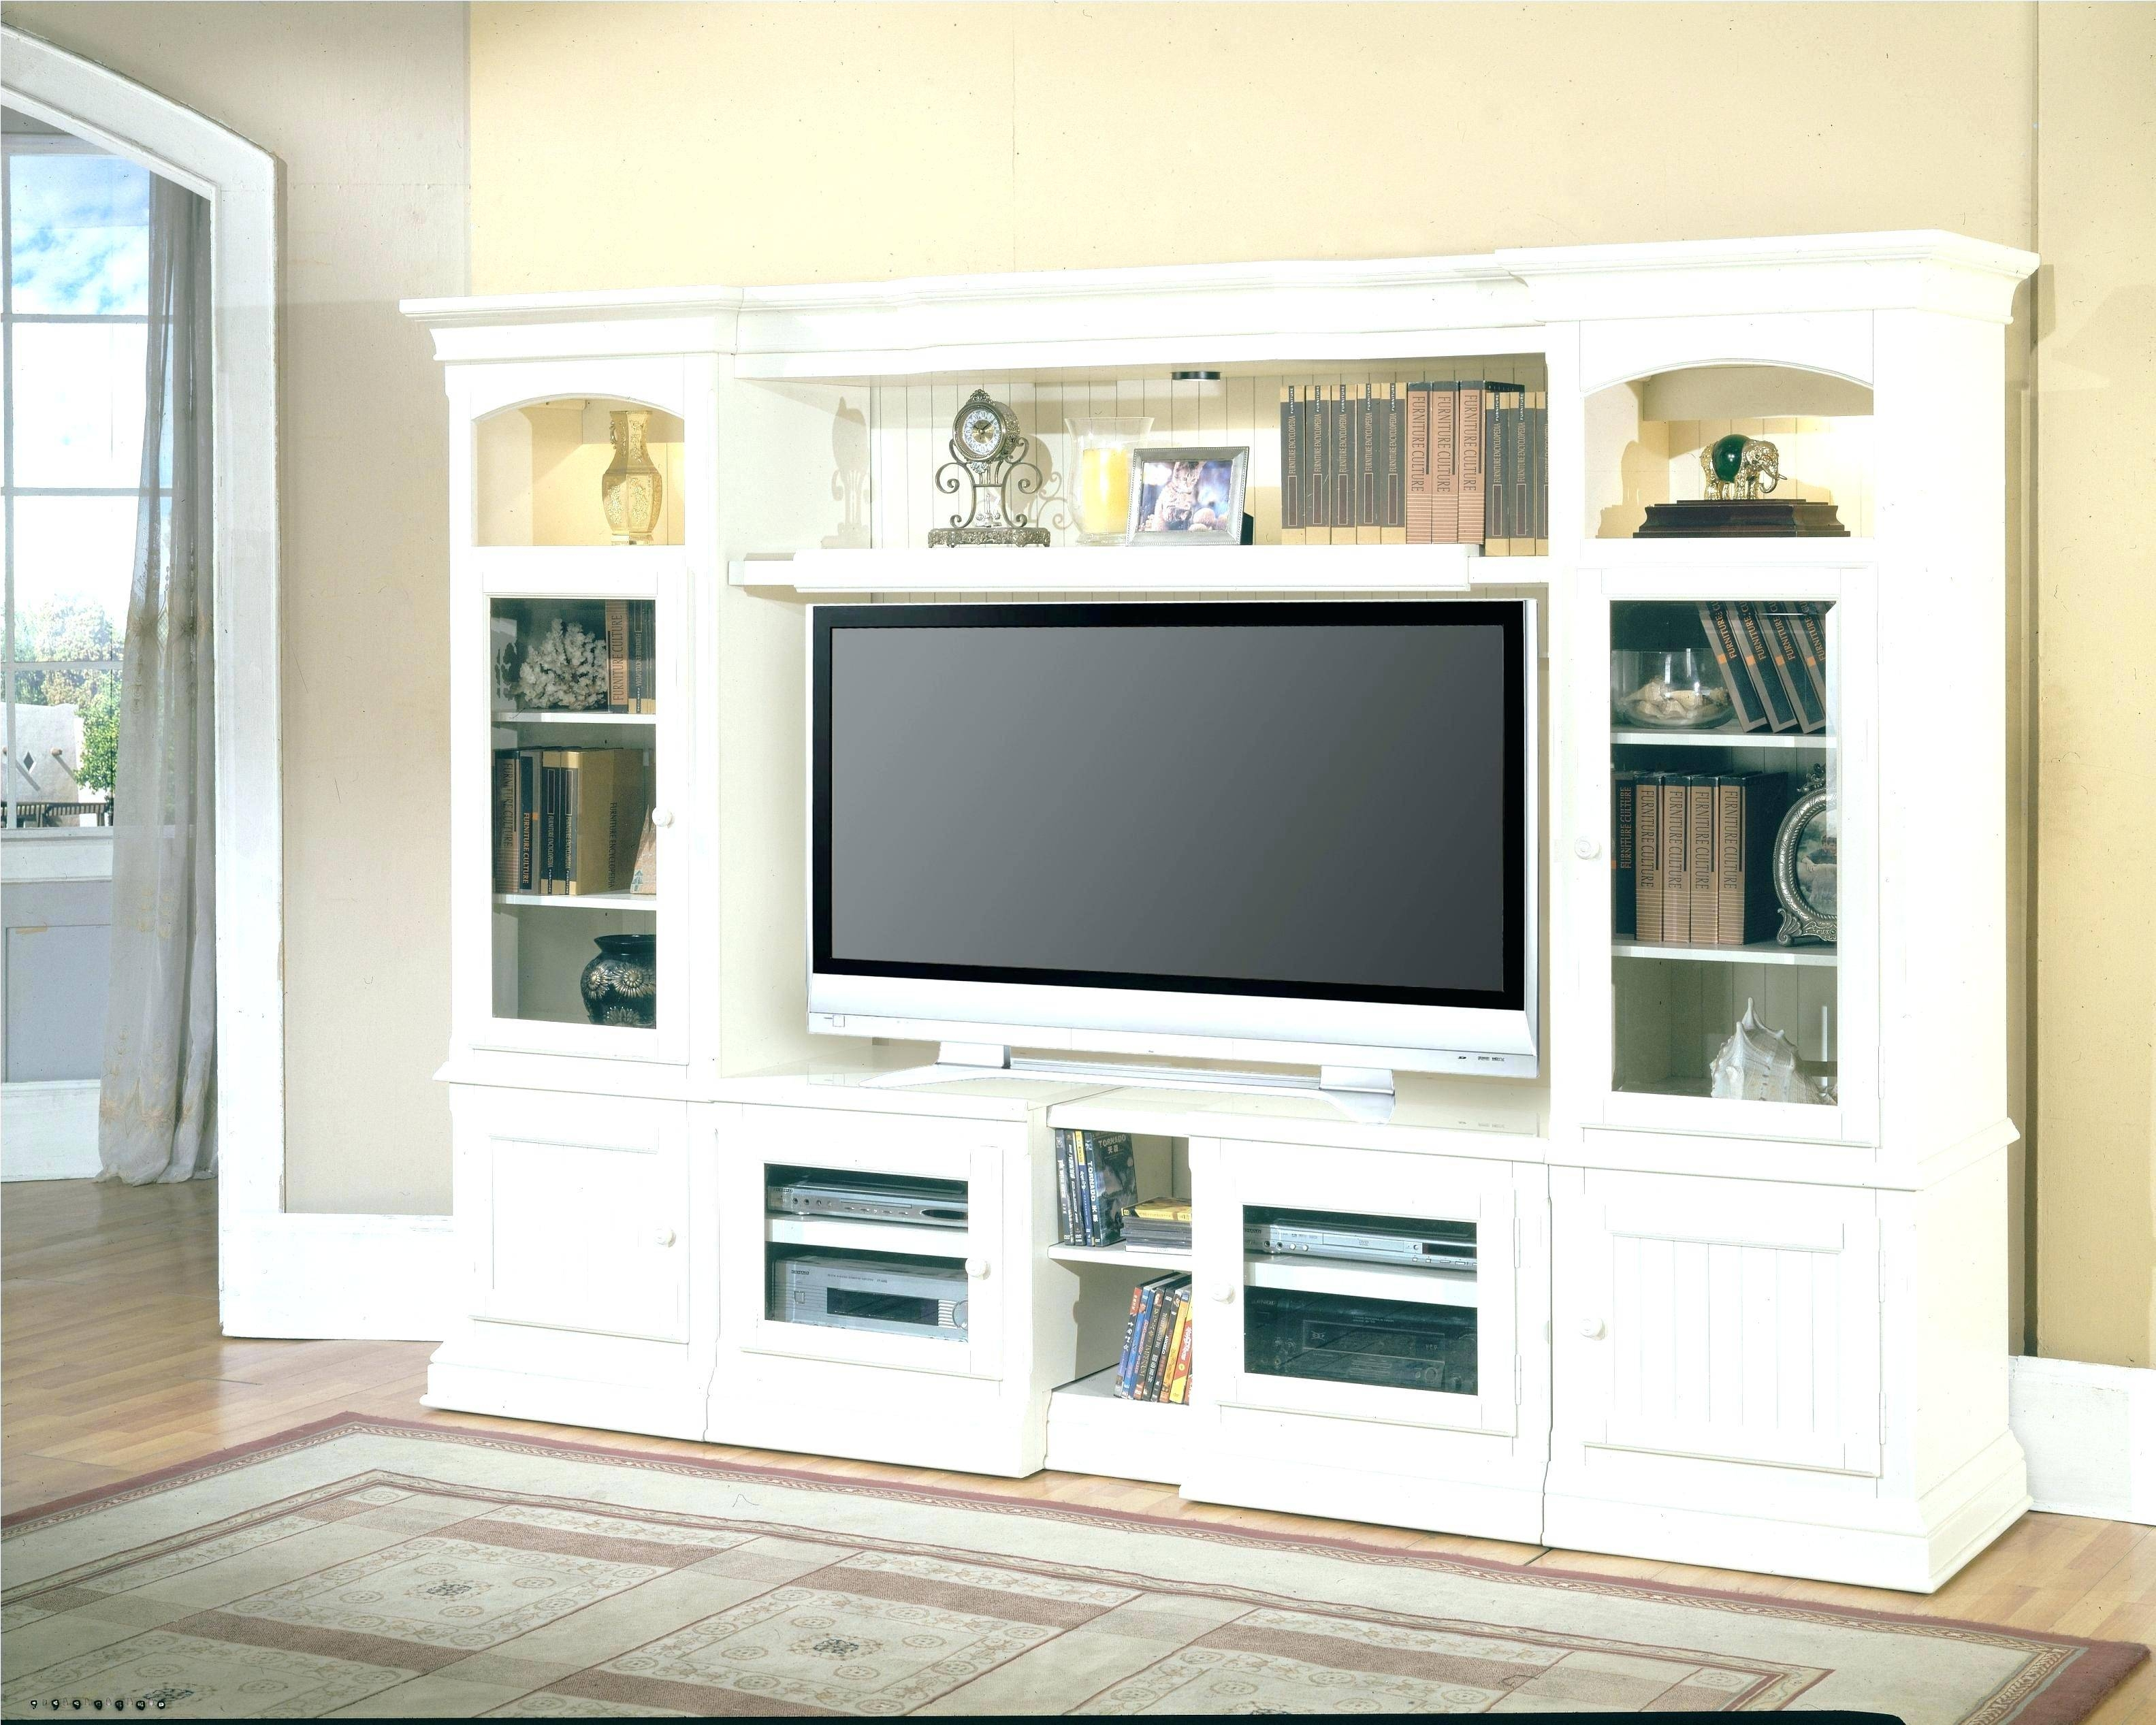 Tv Stand : Furniture Design 90 Easy Farmhouse Style Tv Stand intended for Country Style Tv Cabinets (Image 13 of 15)